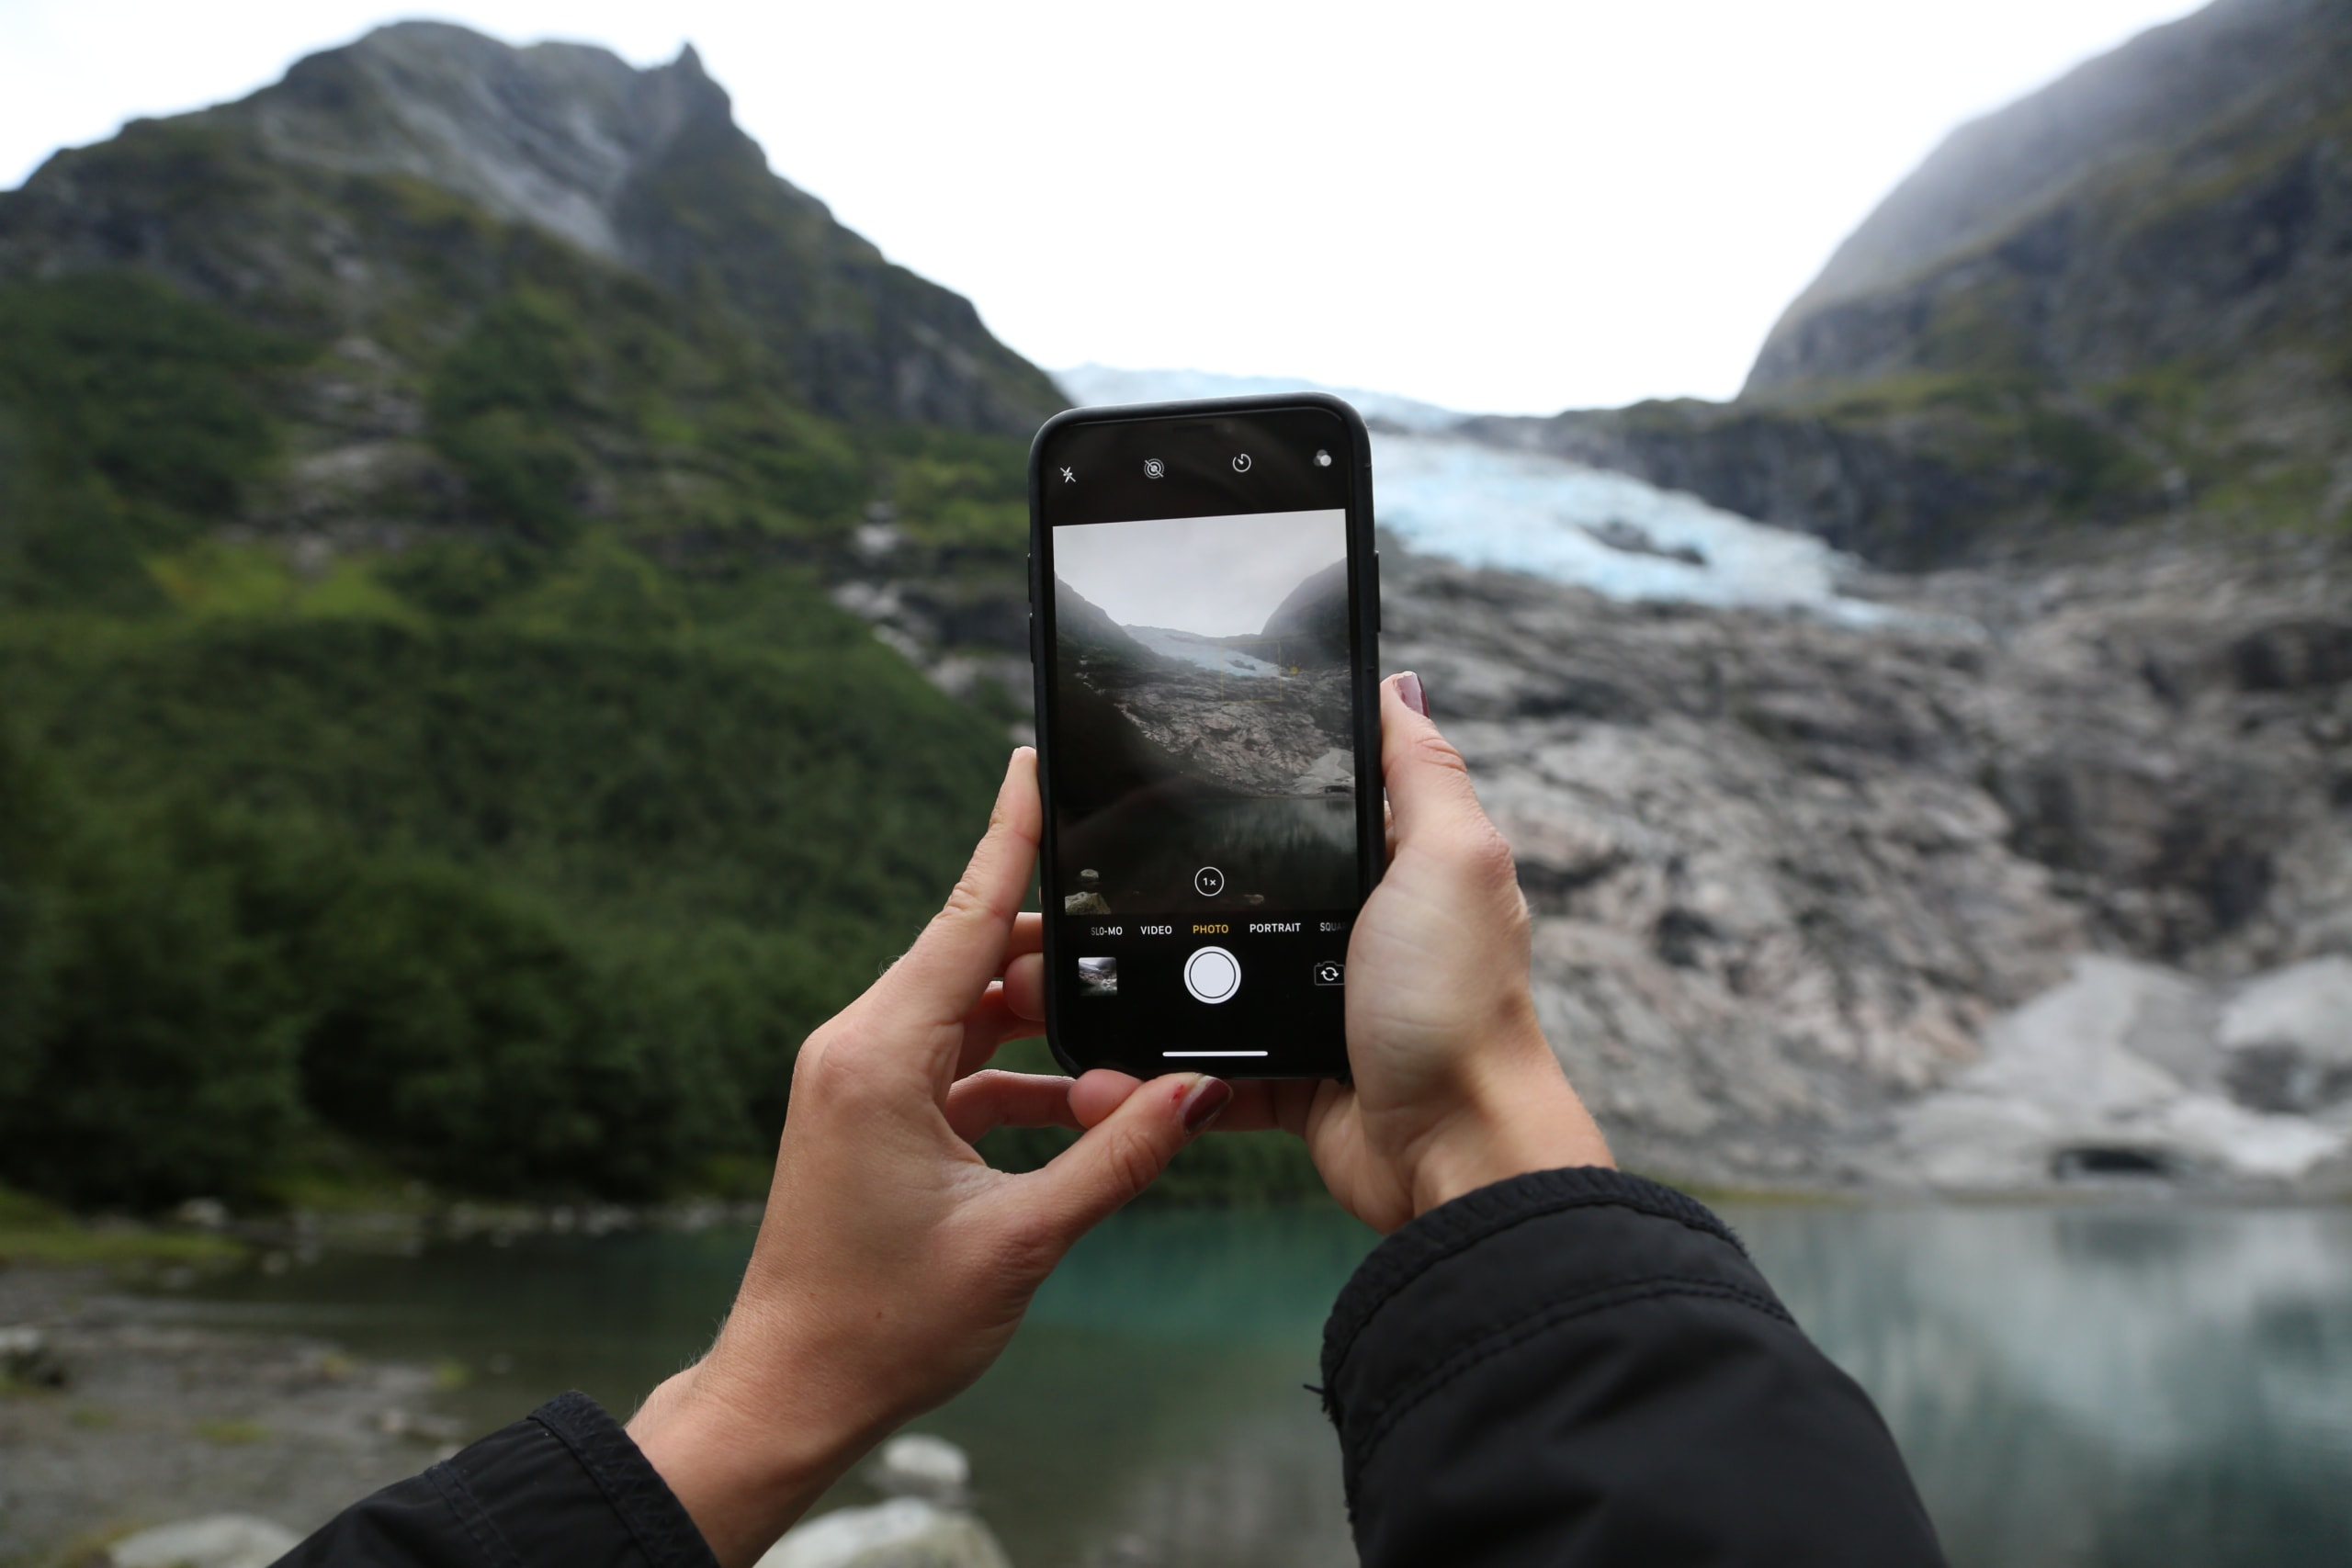 Woman taking a photo of the Bøyabreen glacier with an iPhone